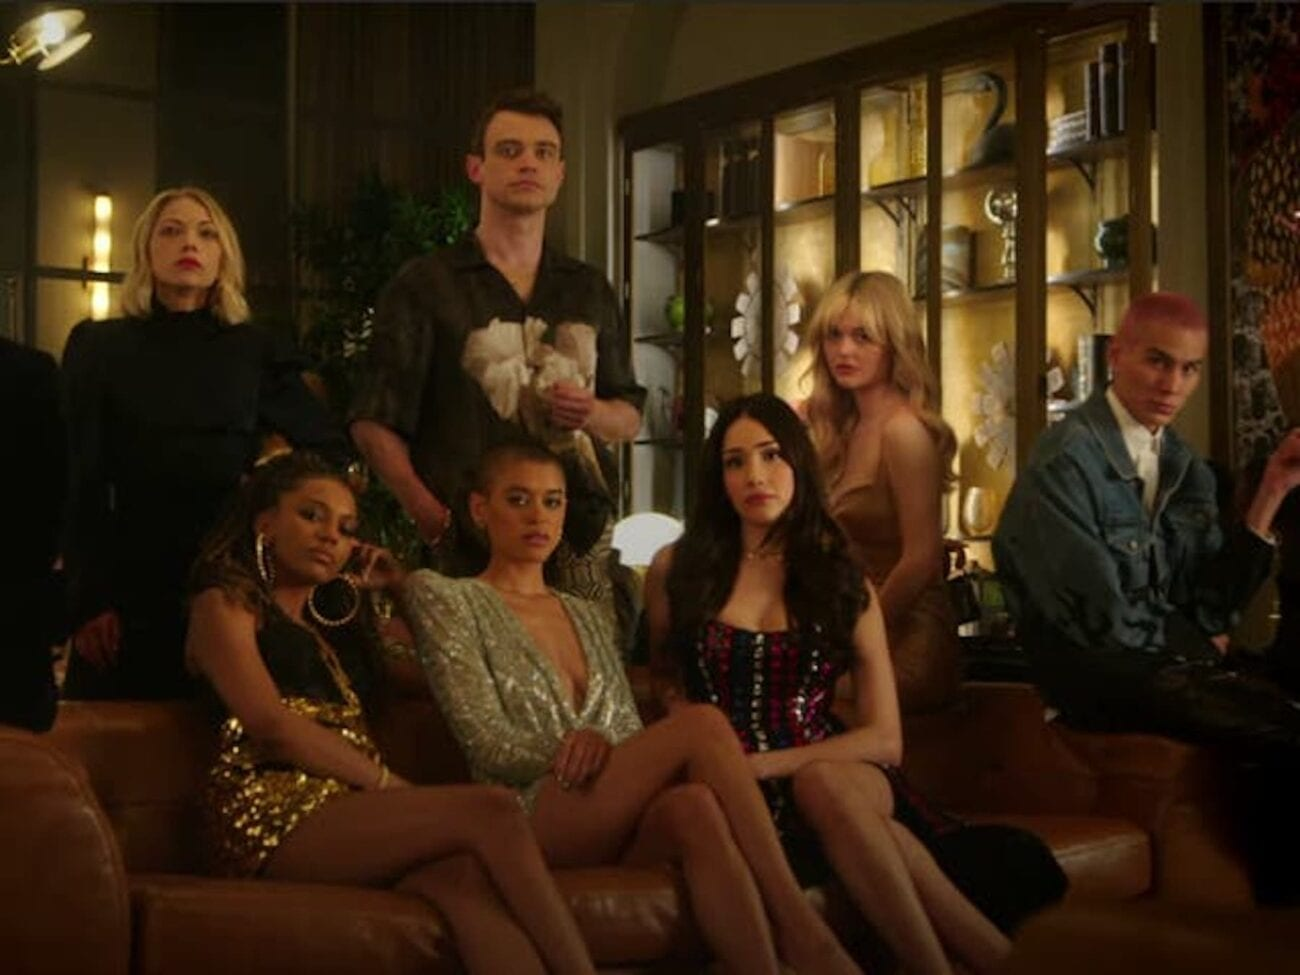 'Gossip Girl' drops a teaser to give fans a much needed look at the reboot in action. XOXO your way in to see what we've learned from it.